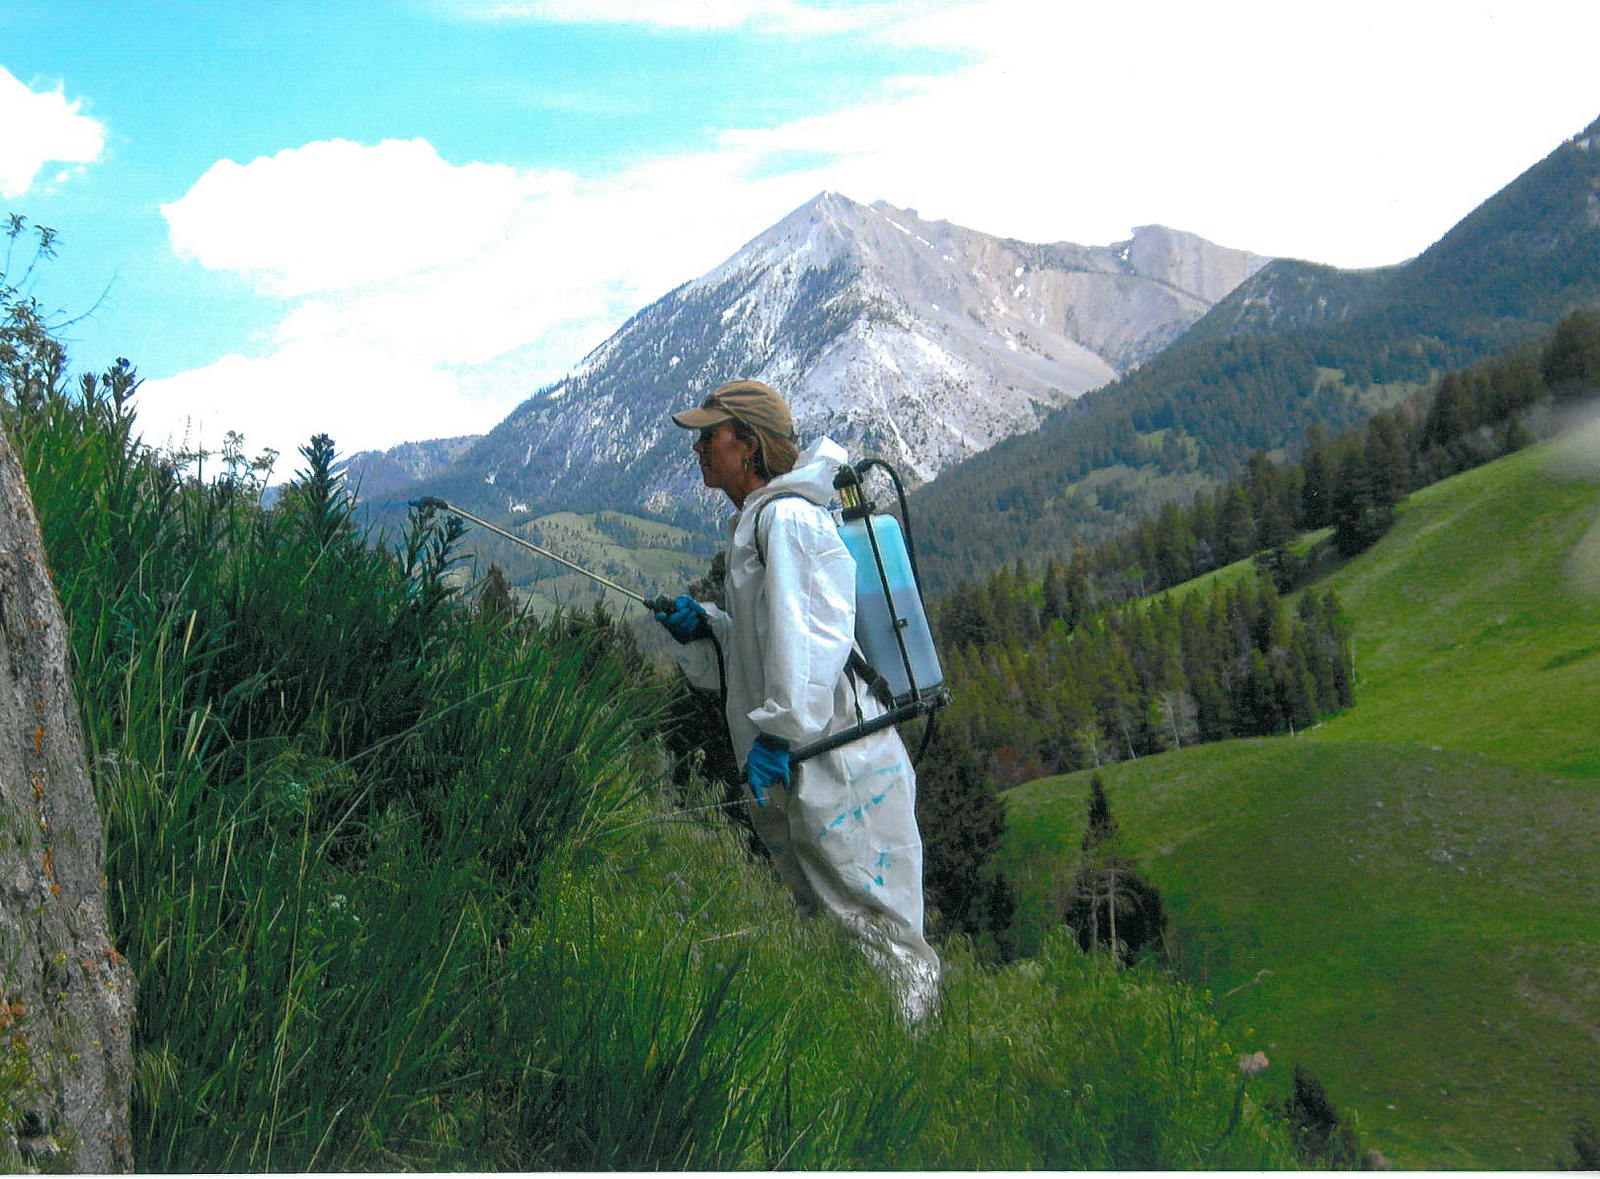 A Seasonal Employee Sprays Weeds on the Rocky Mountain Front